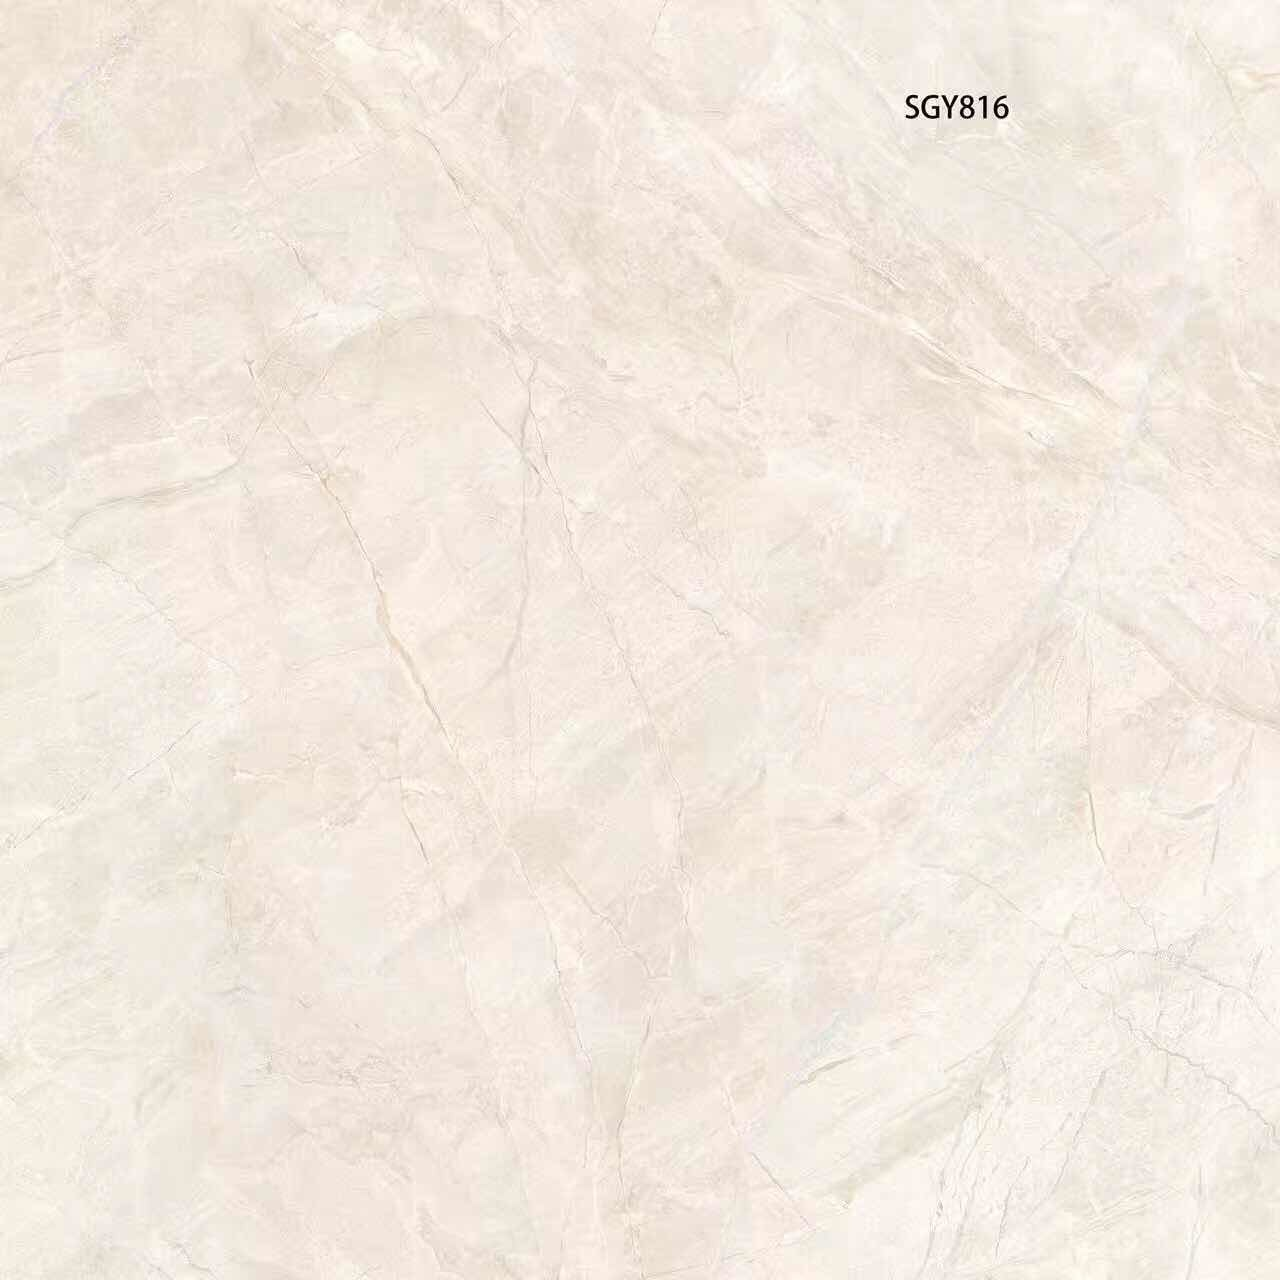 China building material diamond porcelain tile marble glazed ceramic building material diamond porcelain tile marble glazed ceramic floor tile dailygadgetfo Image collections